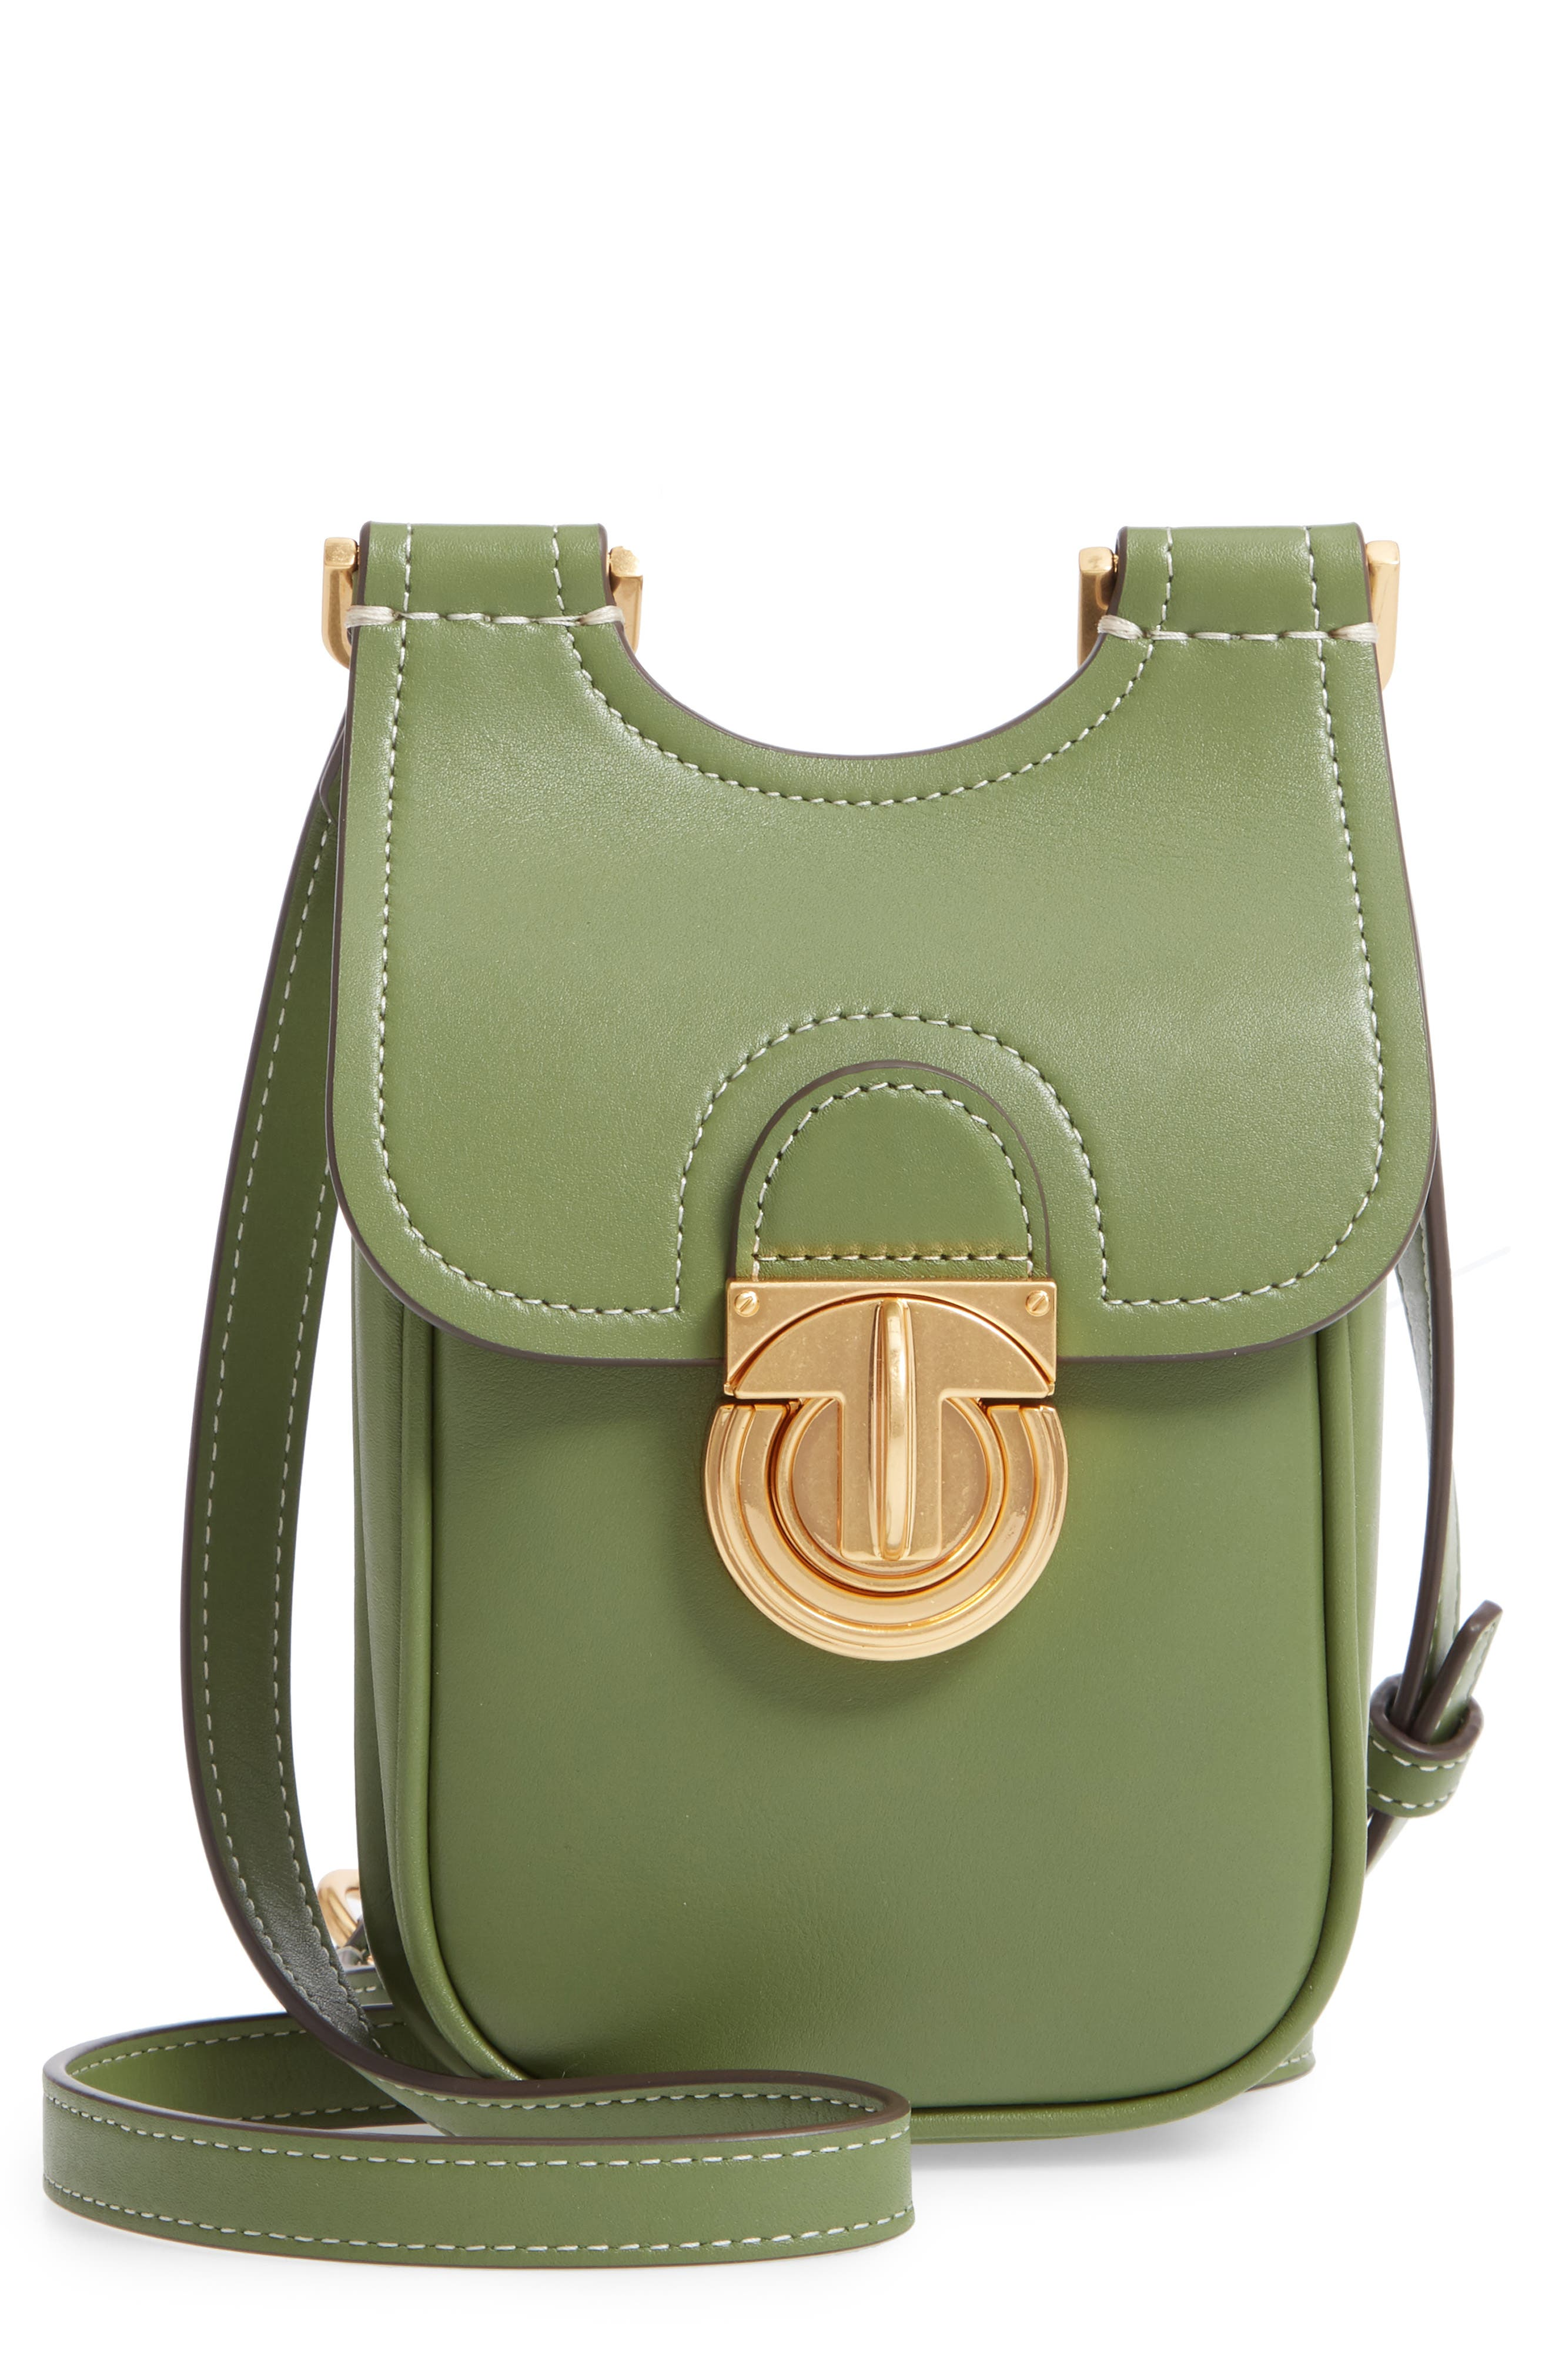 TORY BURCH, James Leather Phone Crossbody Bag, Main thumbnail 1, color, SPINACH